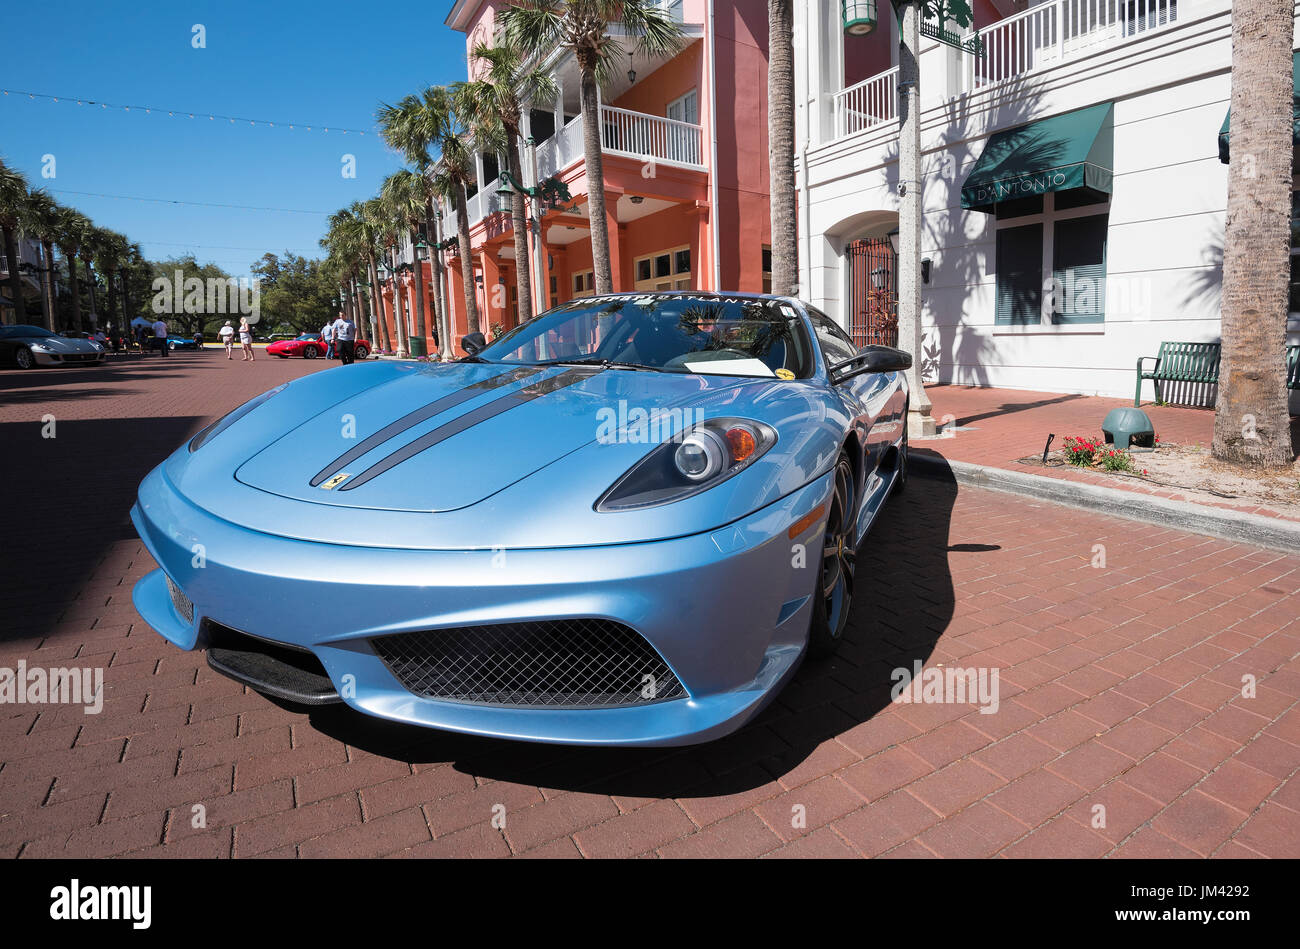 Ferari classic car parked in downtown Celebration (Florida) during the  annual Classic Car Show. - Stock Image